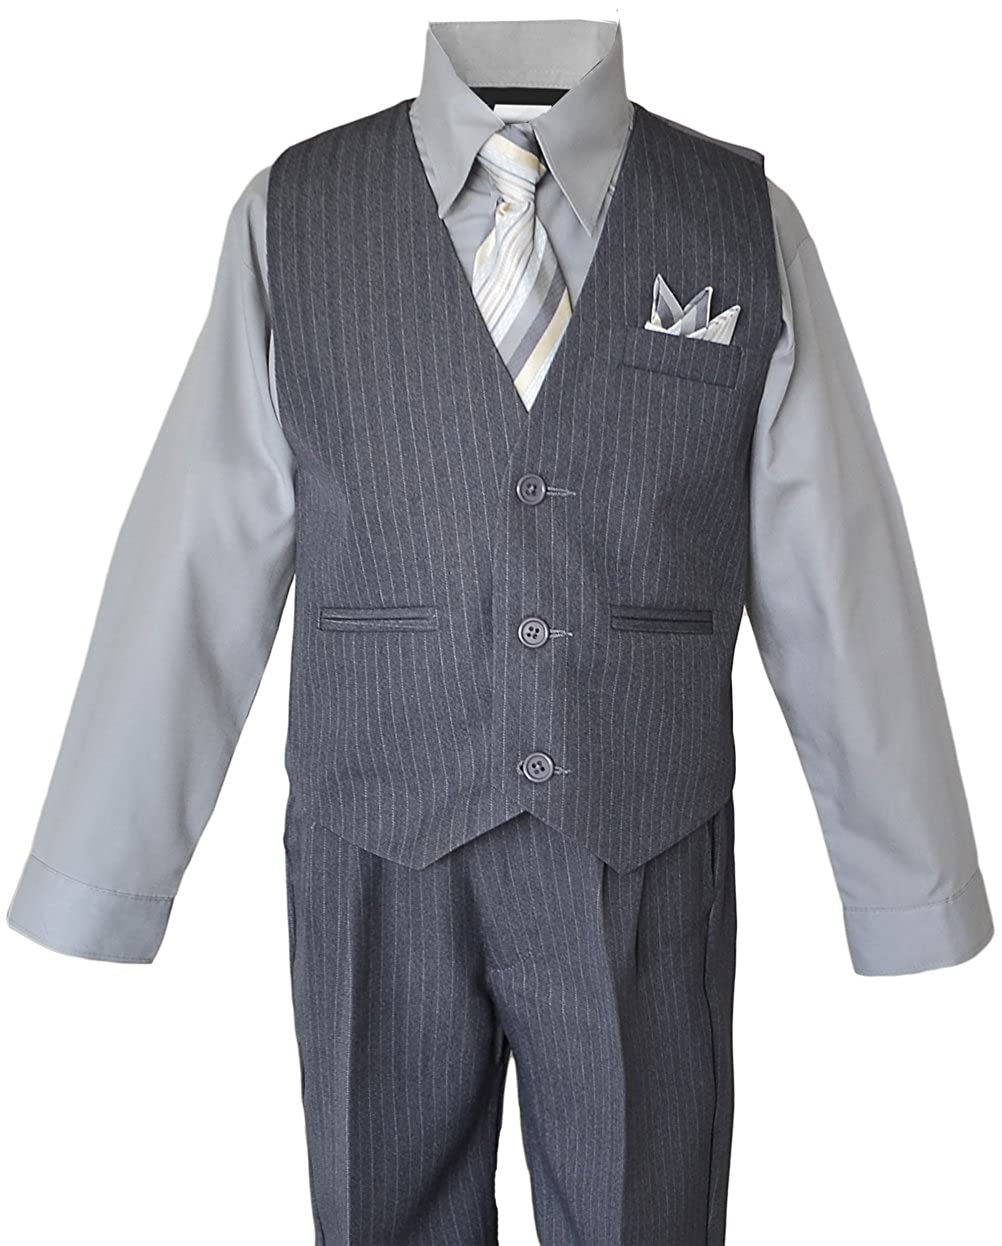 Black n Bianco Boys Grey Pinstripe Vest Suits Matching Tie